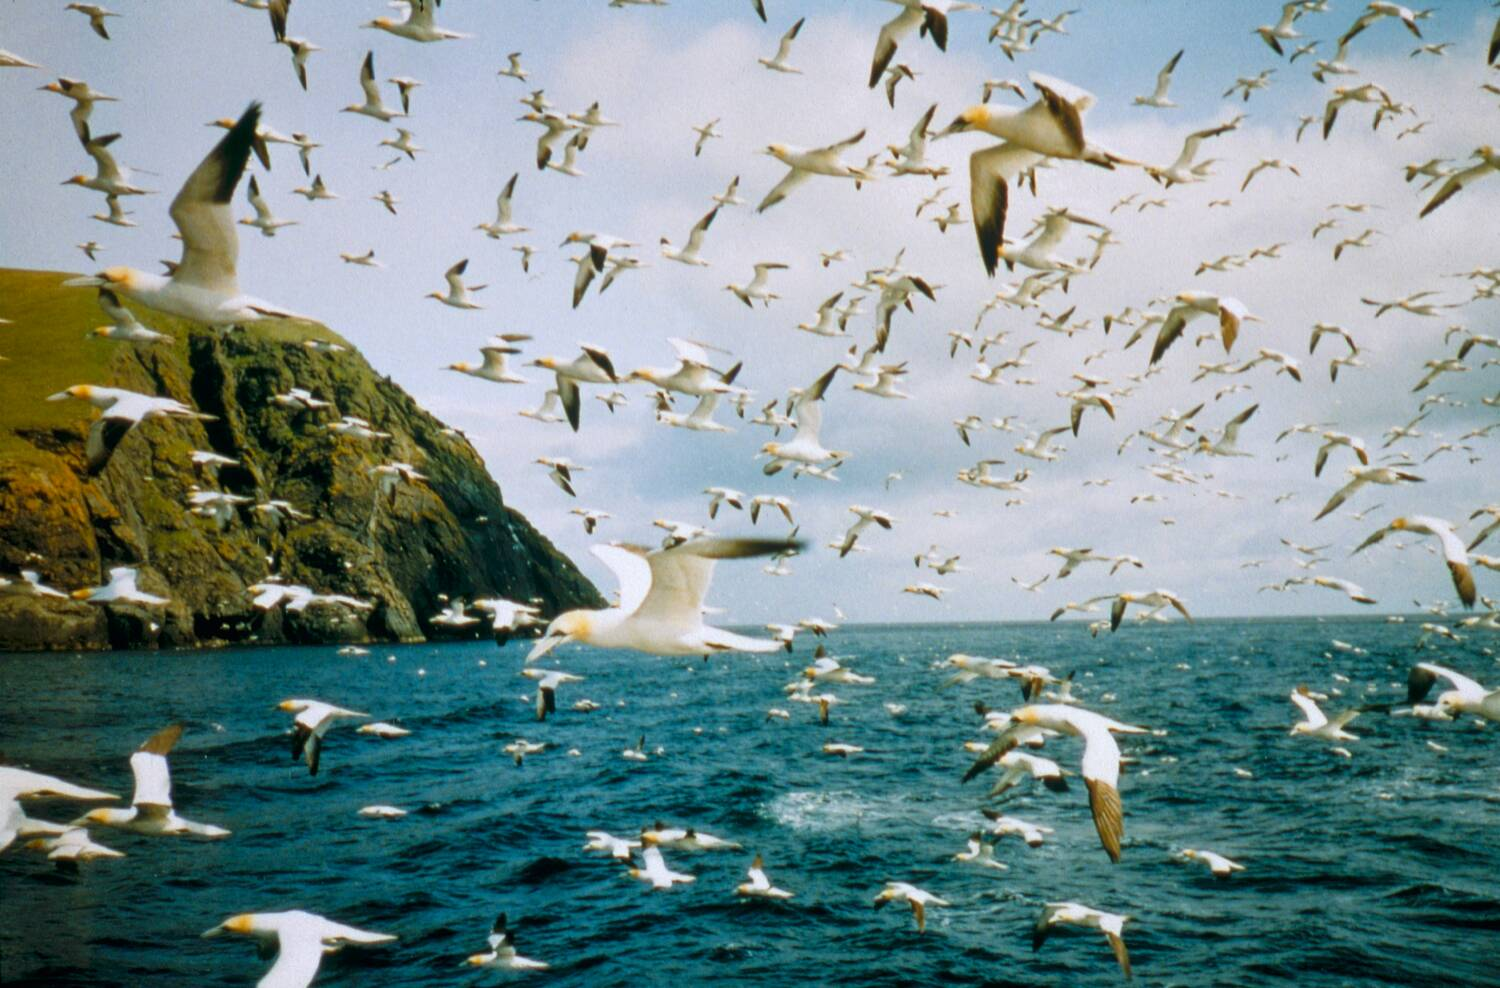 Gannets fly over St Kilda